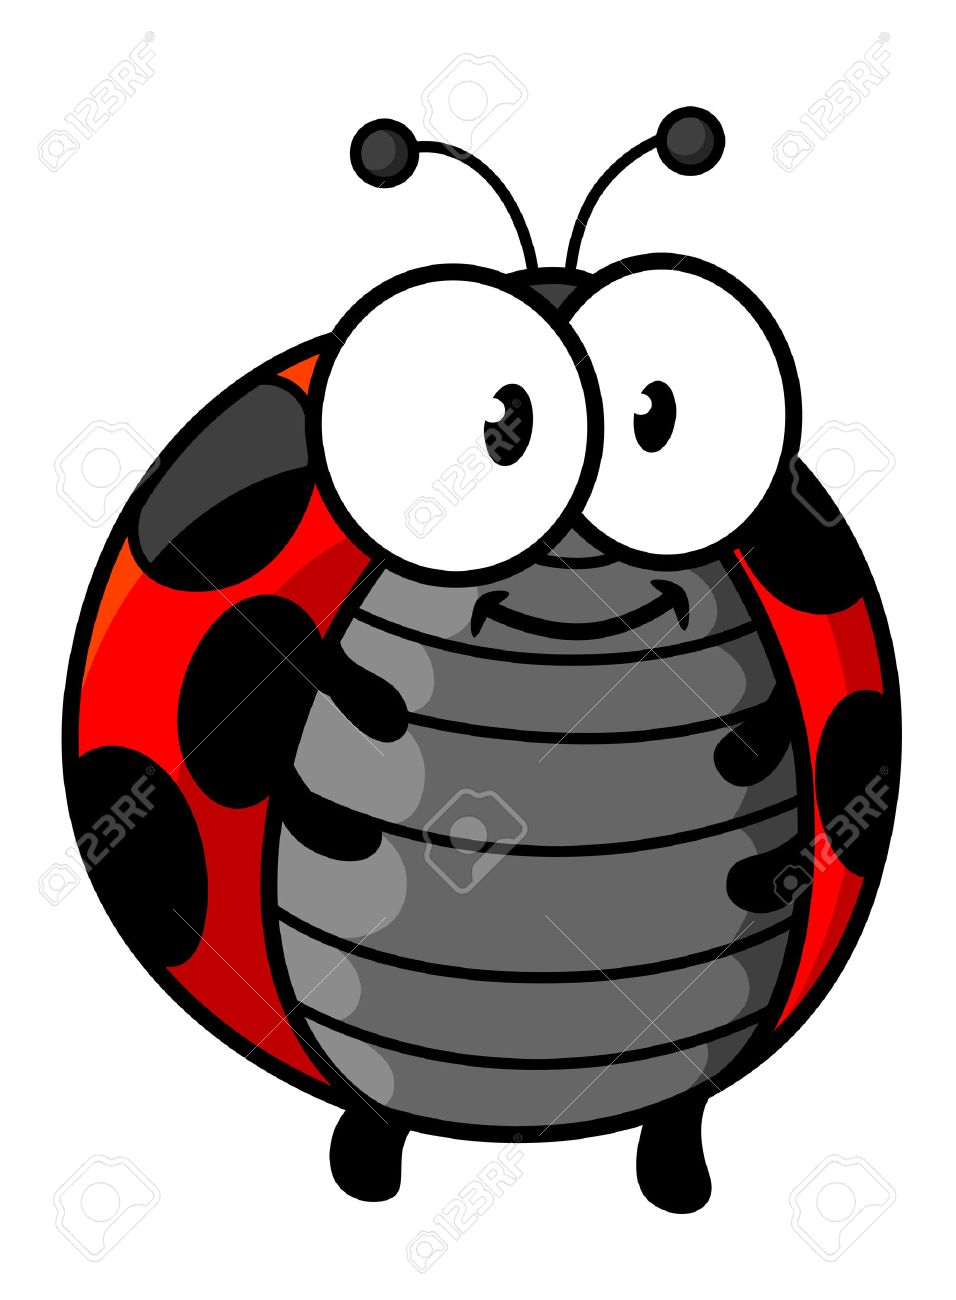 ladybug cartoon character showing cute smiling red and black